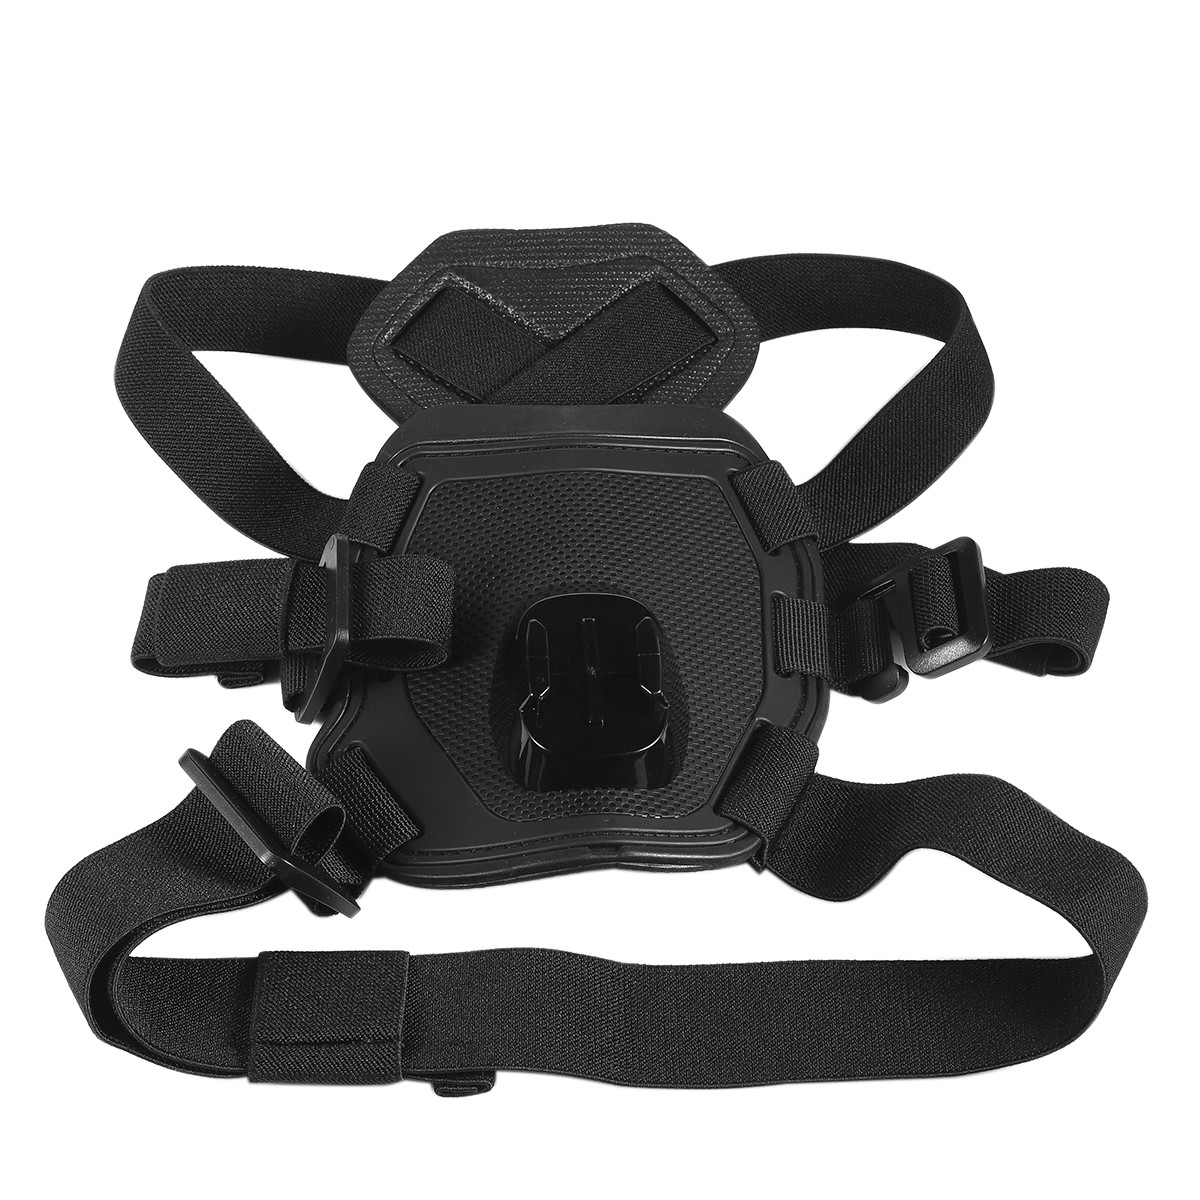 Fetch Dog Harness Chest Back Mount Strap Accessories For GoPro 1 2 3 4 Camera | eBay